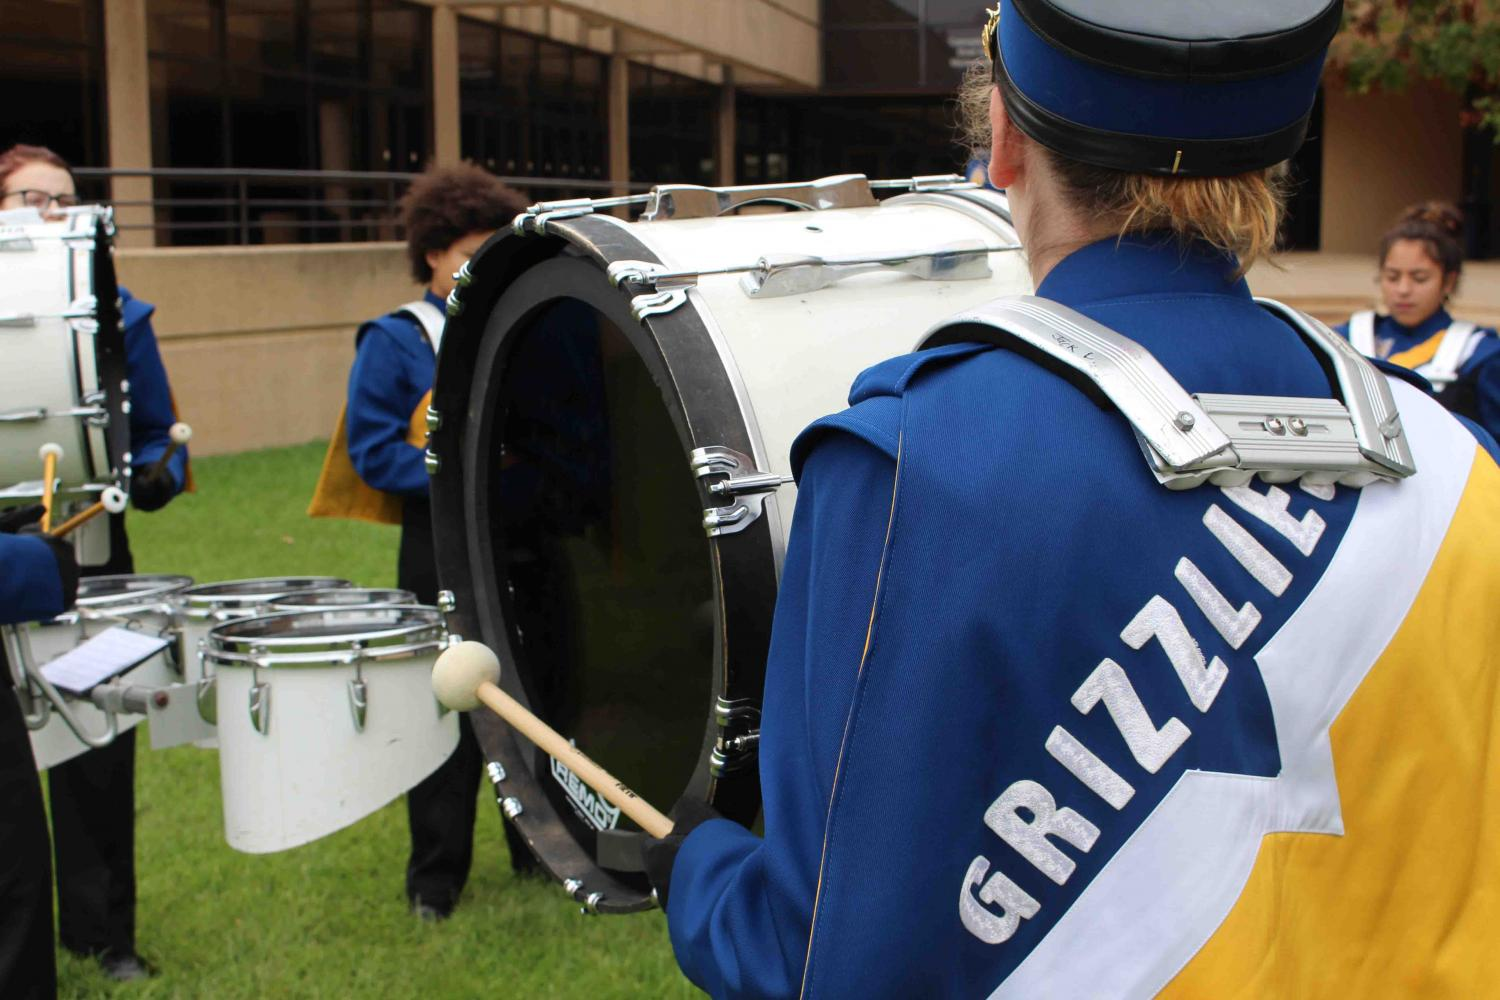 A percussionist plays the bass drum while practicing outside of Century II.